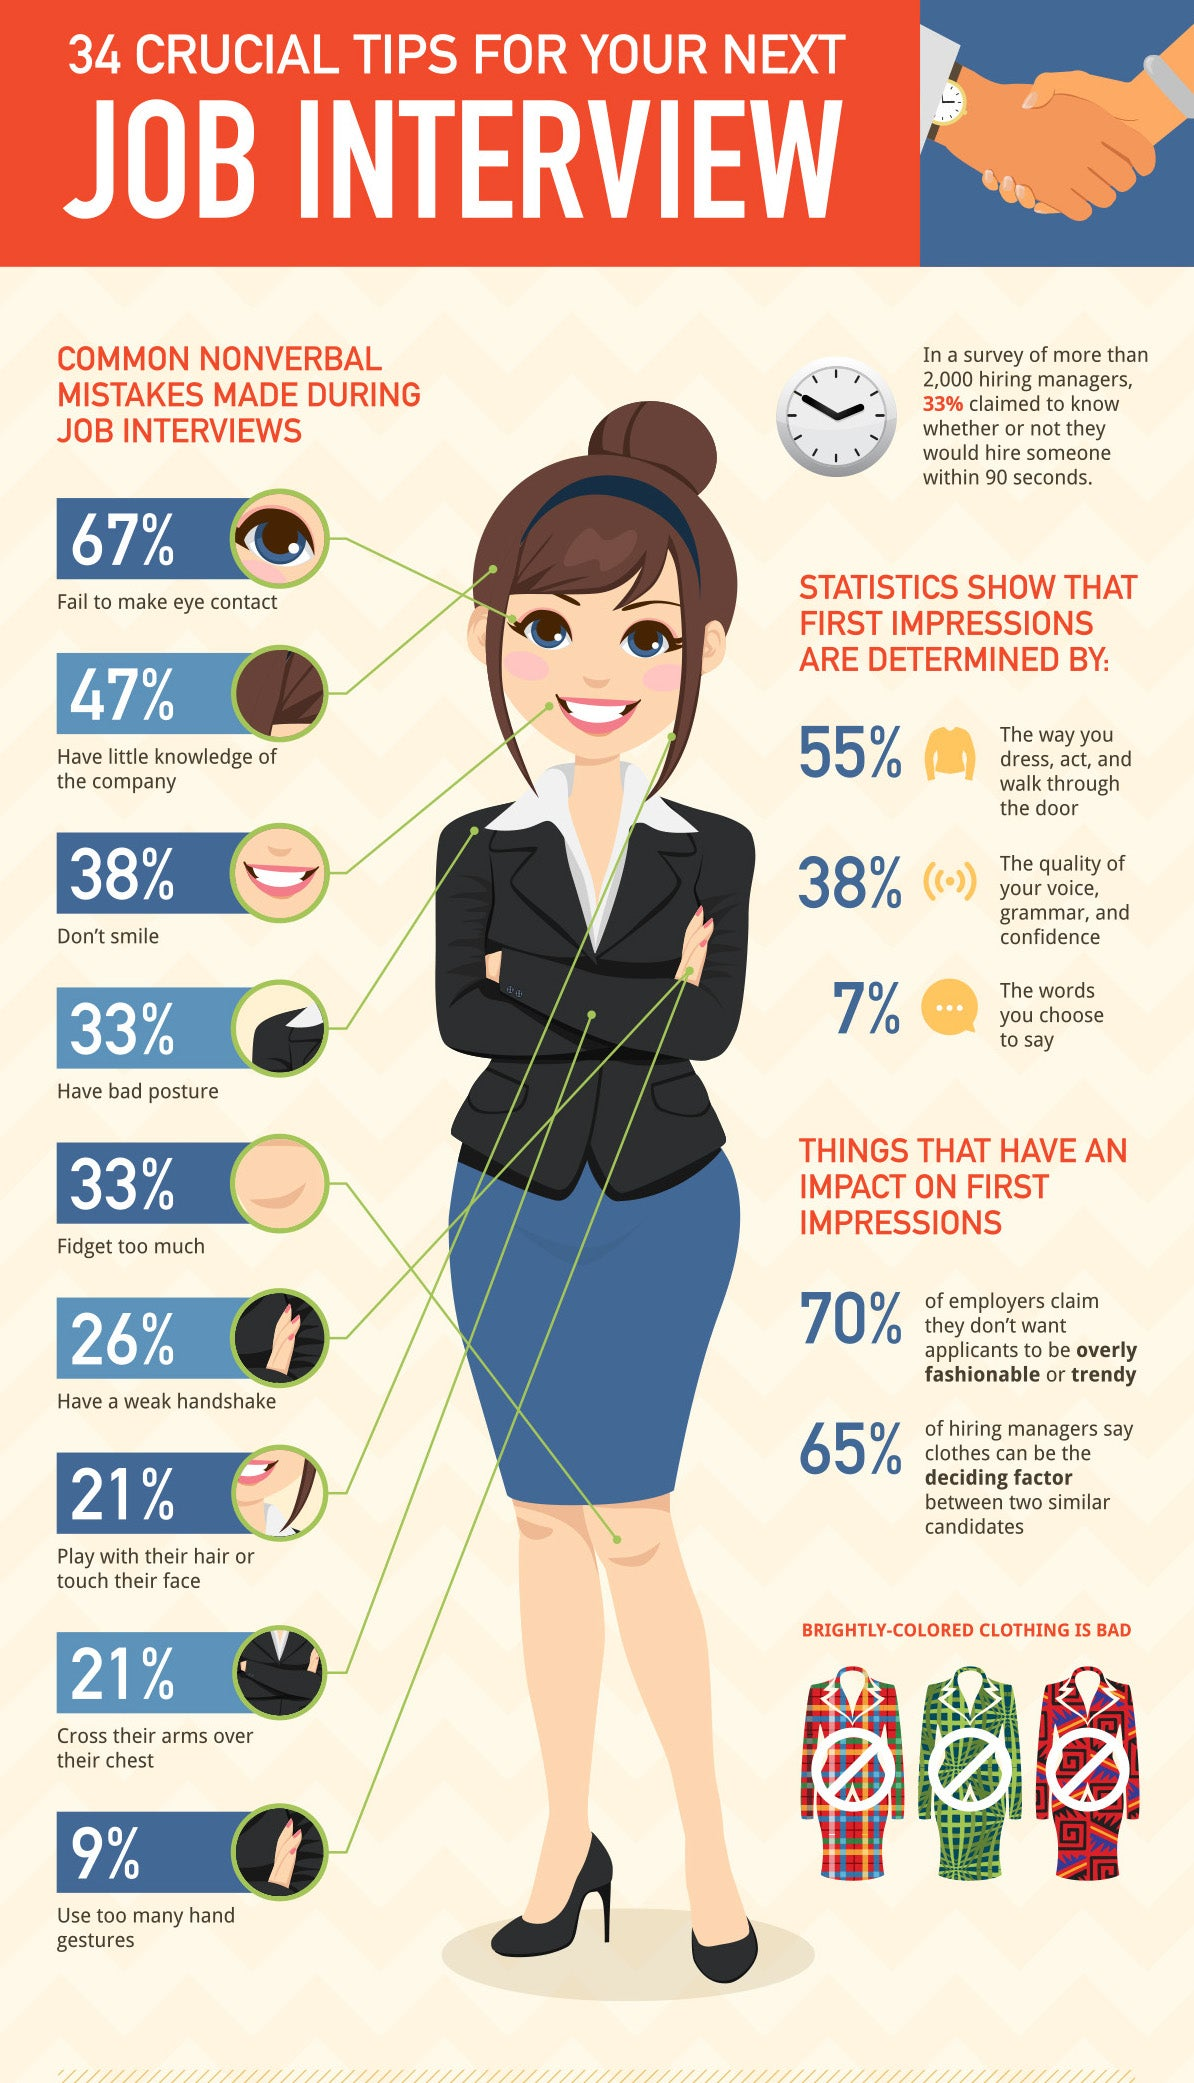 news solace jewellery for more tips here s an infographic by collegeatlas org statistics to back them up